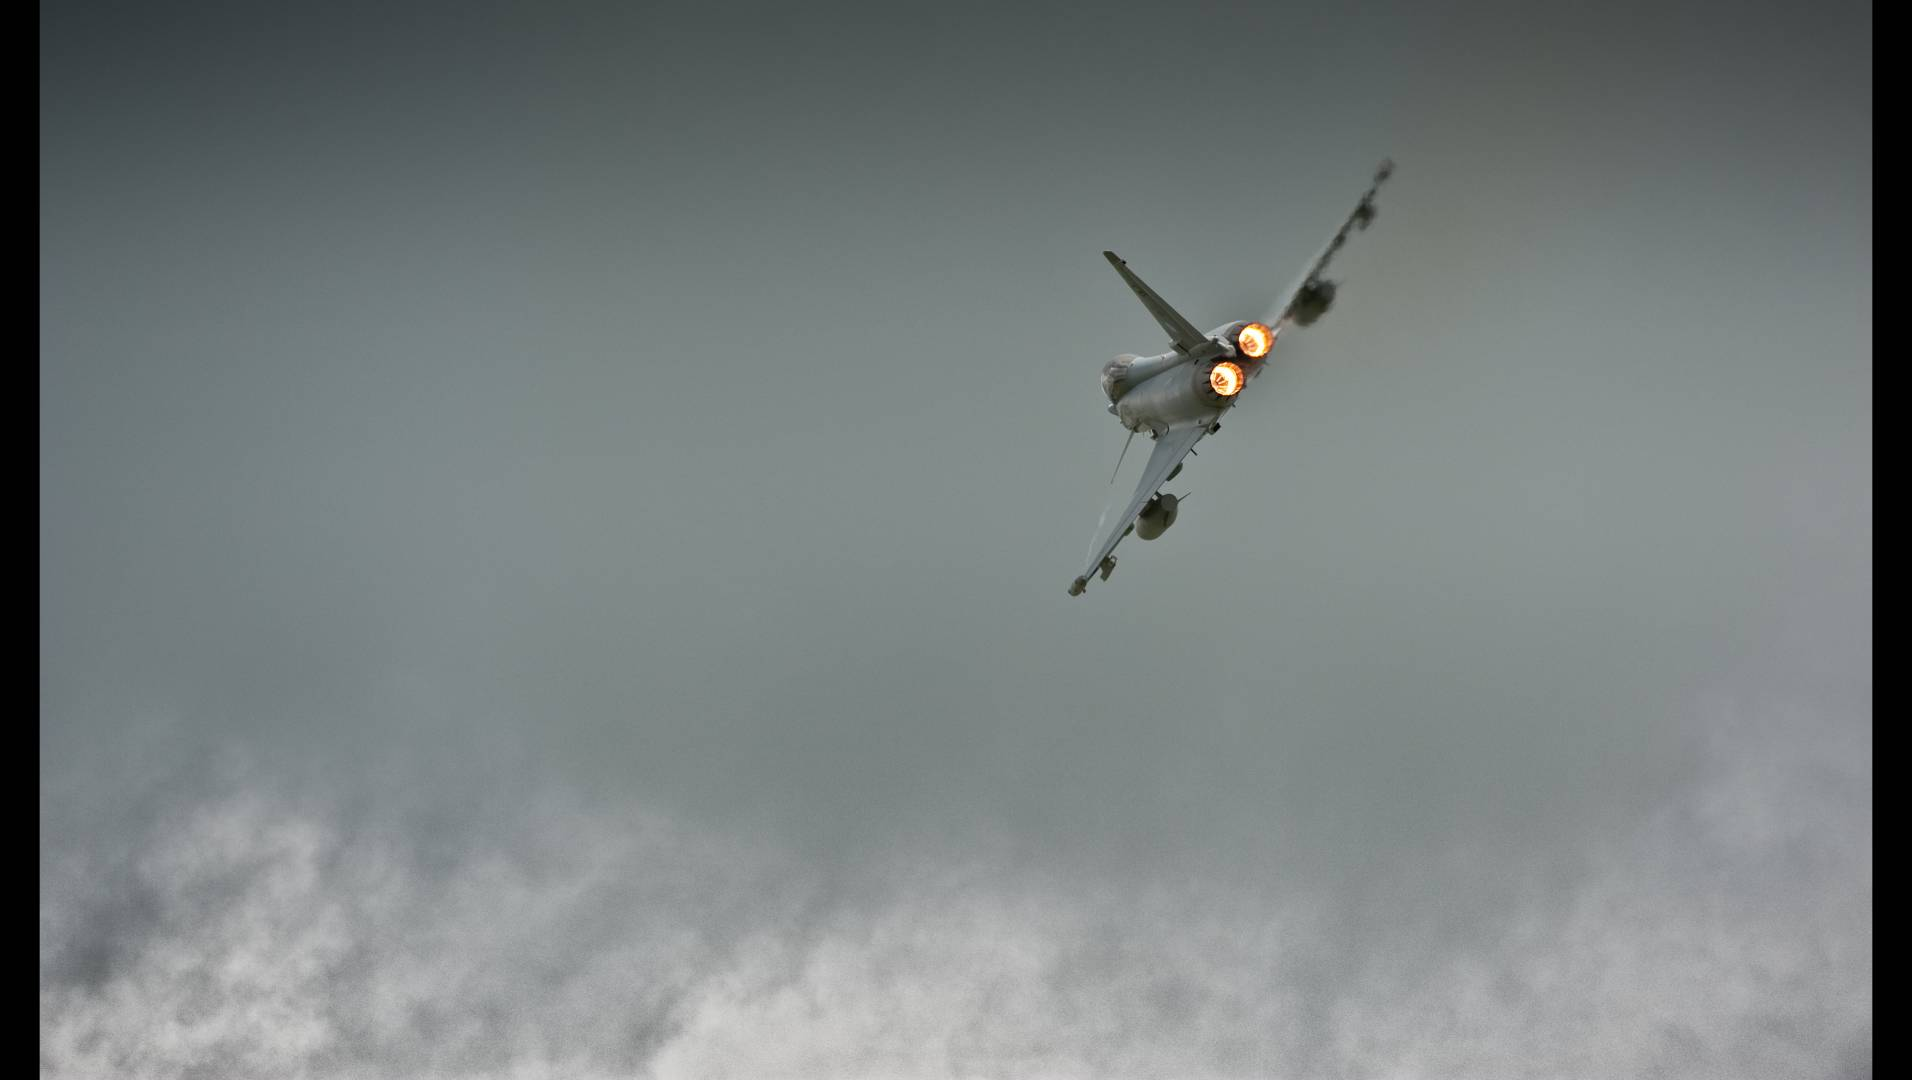 BAE Systems Typhoon in the air – aerospace is the UK defence industry's largest exporter.